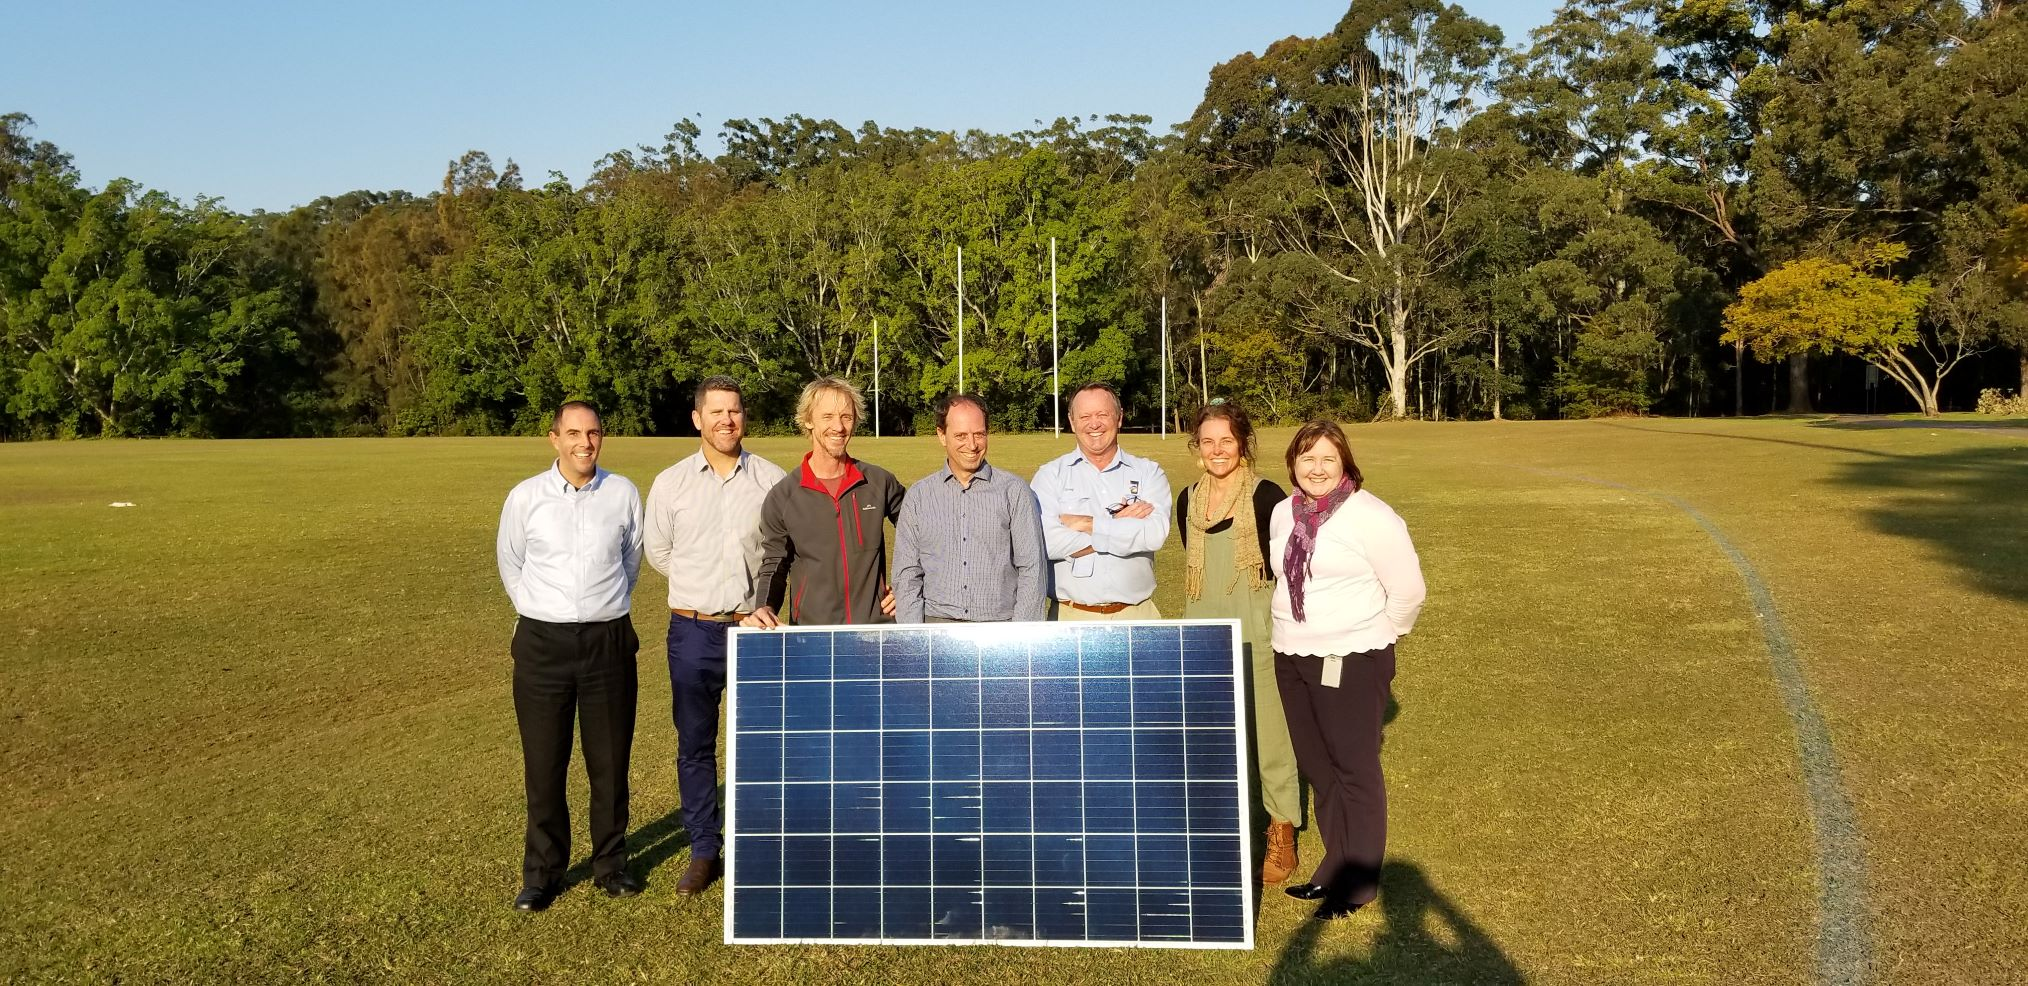 Pictured are (left to right): James Tonson (Corporate Sustainability and Planning Specialist), Jason Bradbrook (Solar Depot), Troy Ryan (Solar Depot), Kersten Schmidt (Enesol), Council Project Manager Greg Hughes, Heather Reid (Acting Section Leader Community Planning and Performance), Elisabeth Nicolson (Corporate Sustainability and Planning Specialist).